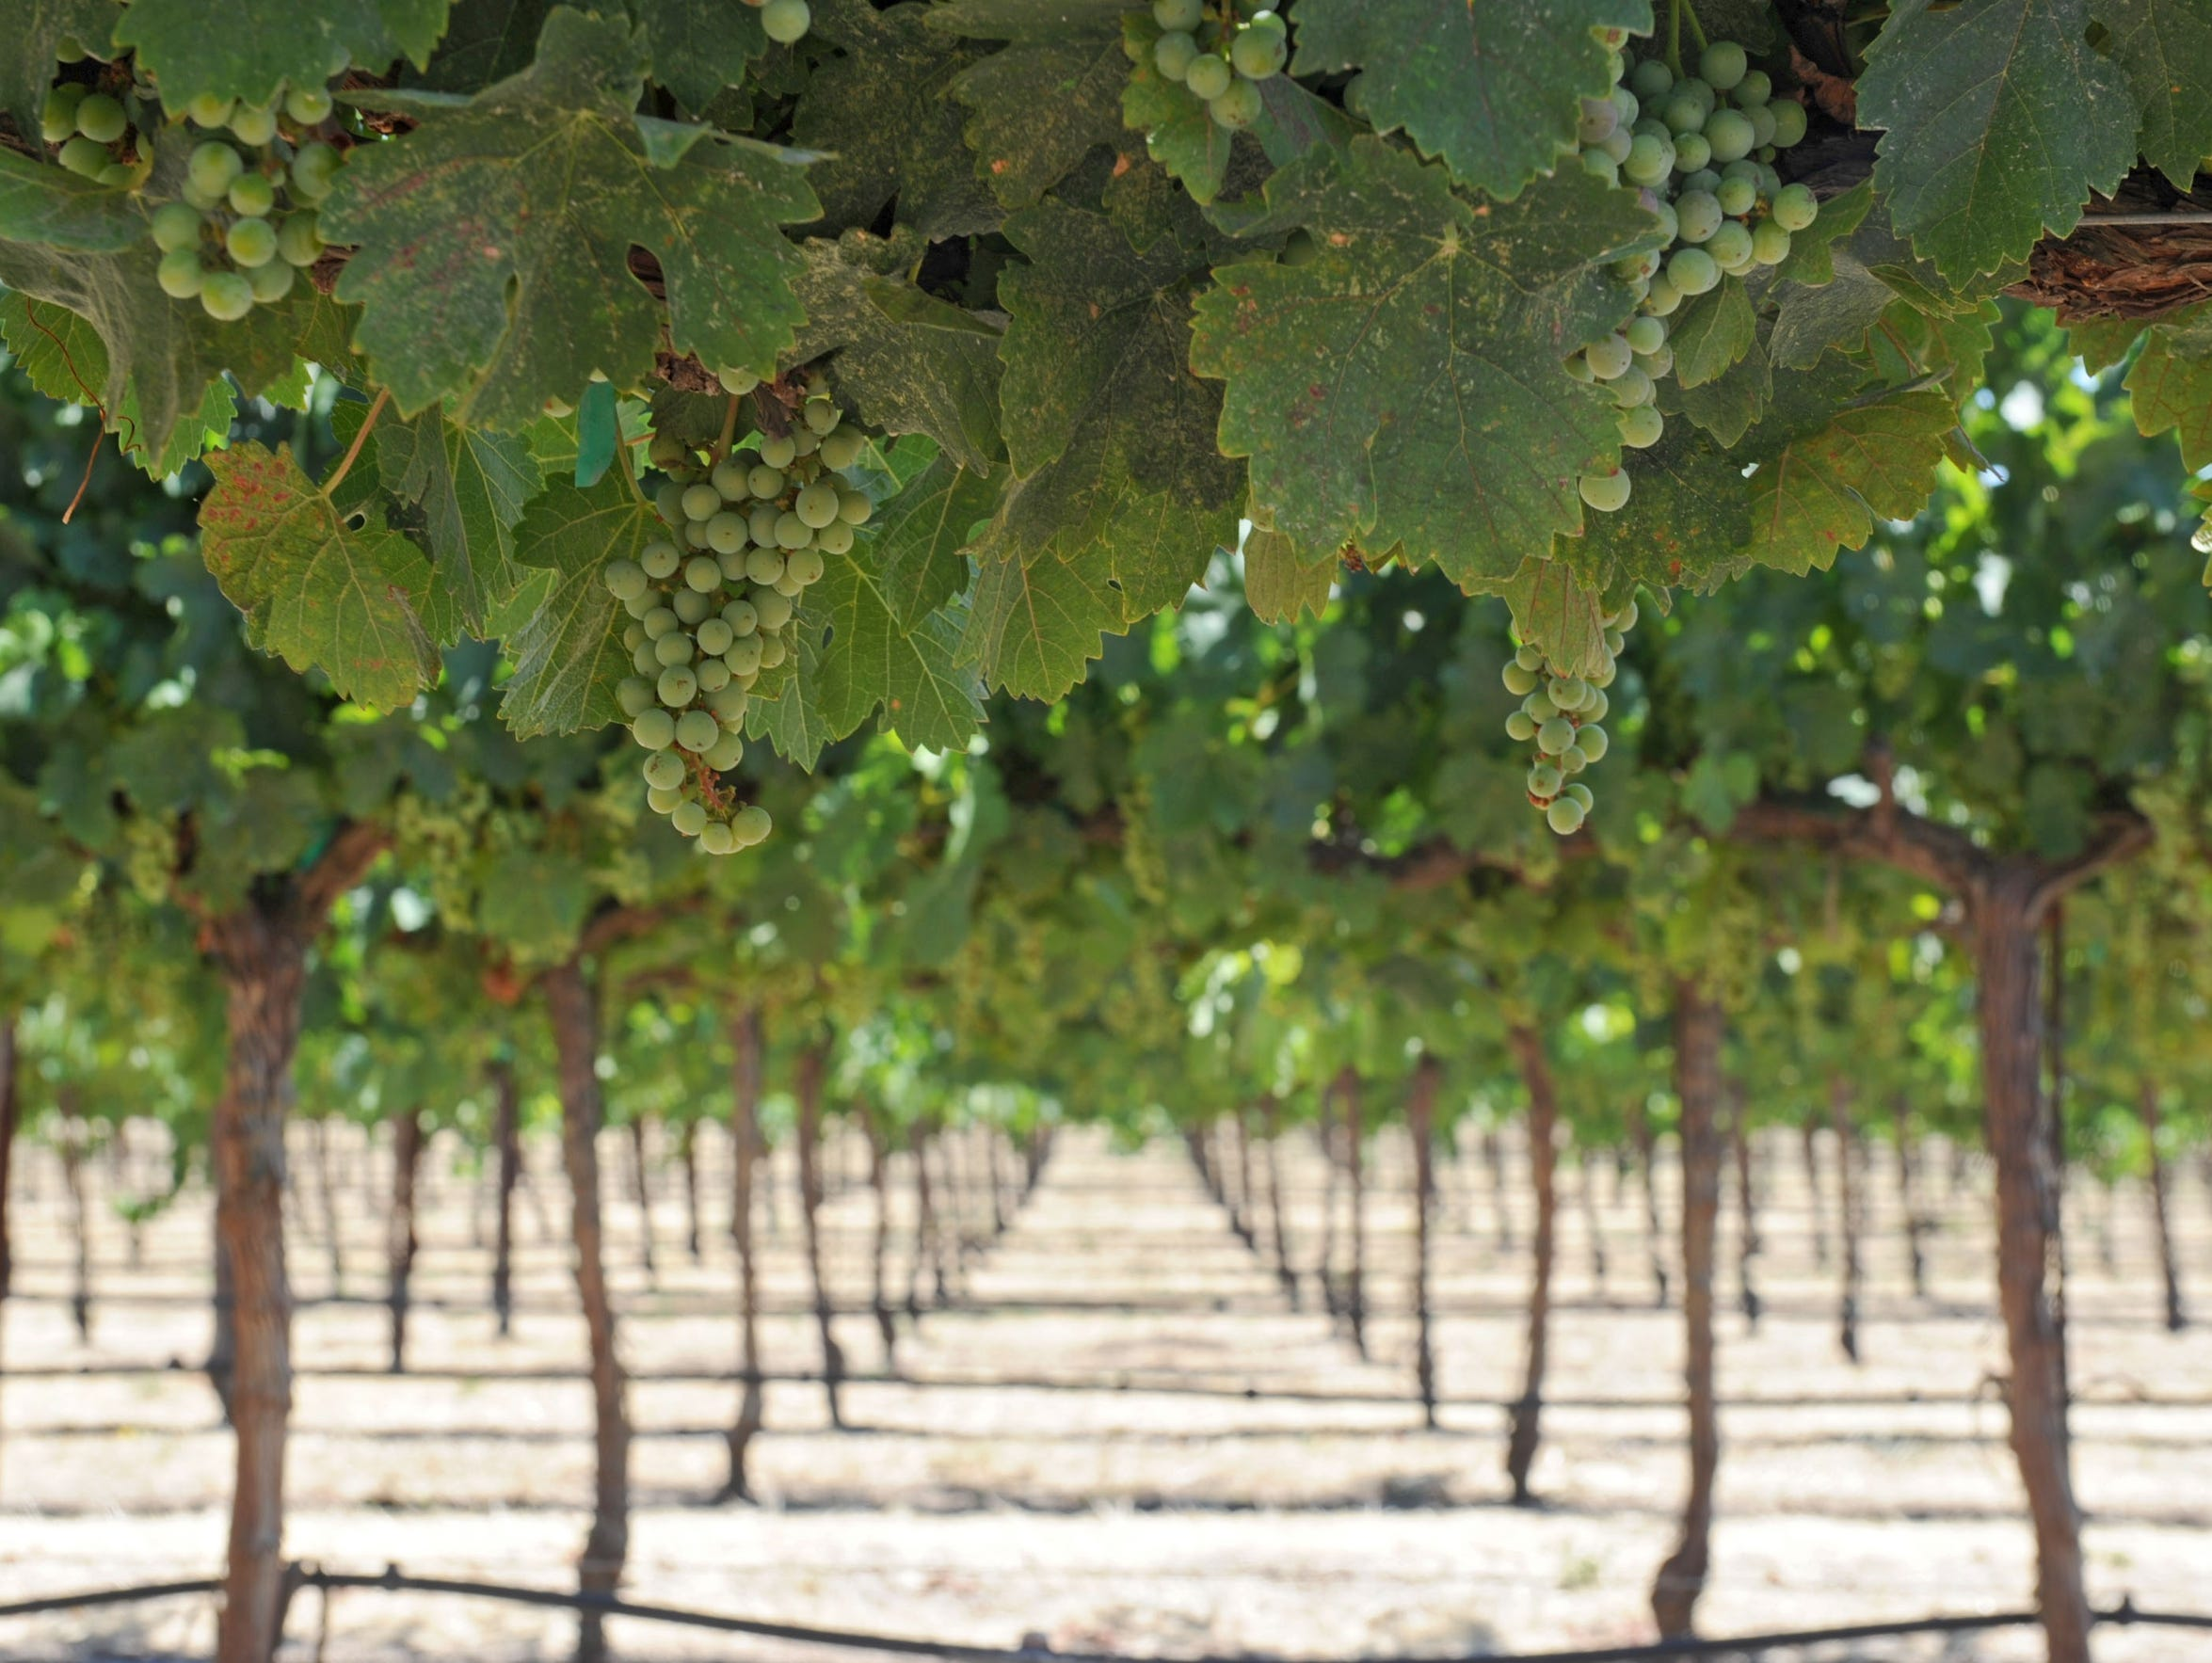 Wine grapes hang on the vines at Pomar Junction Vineyard